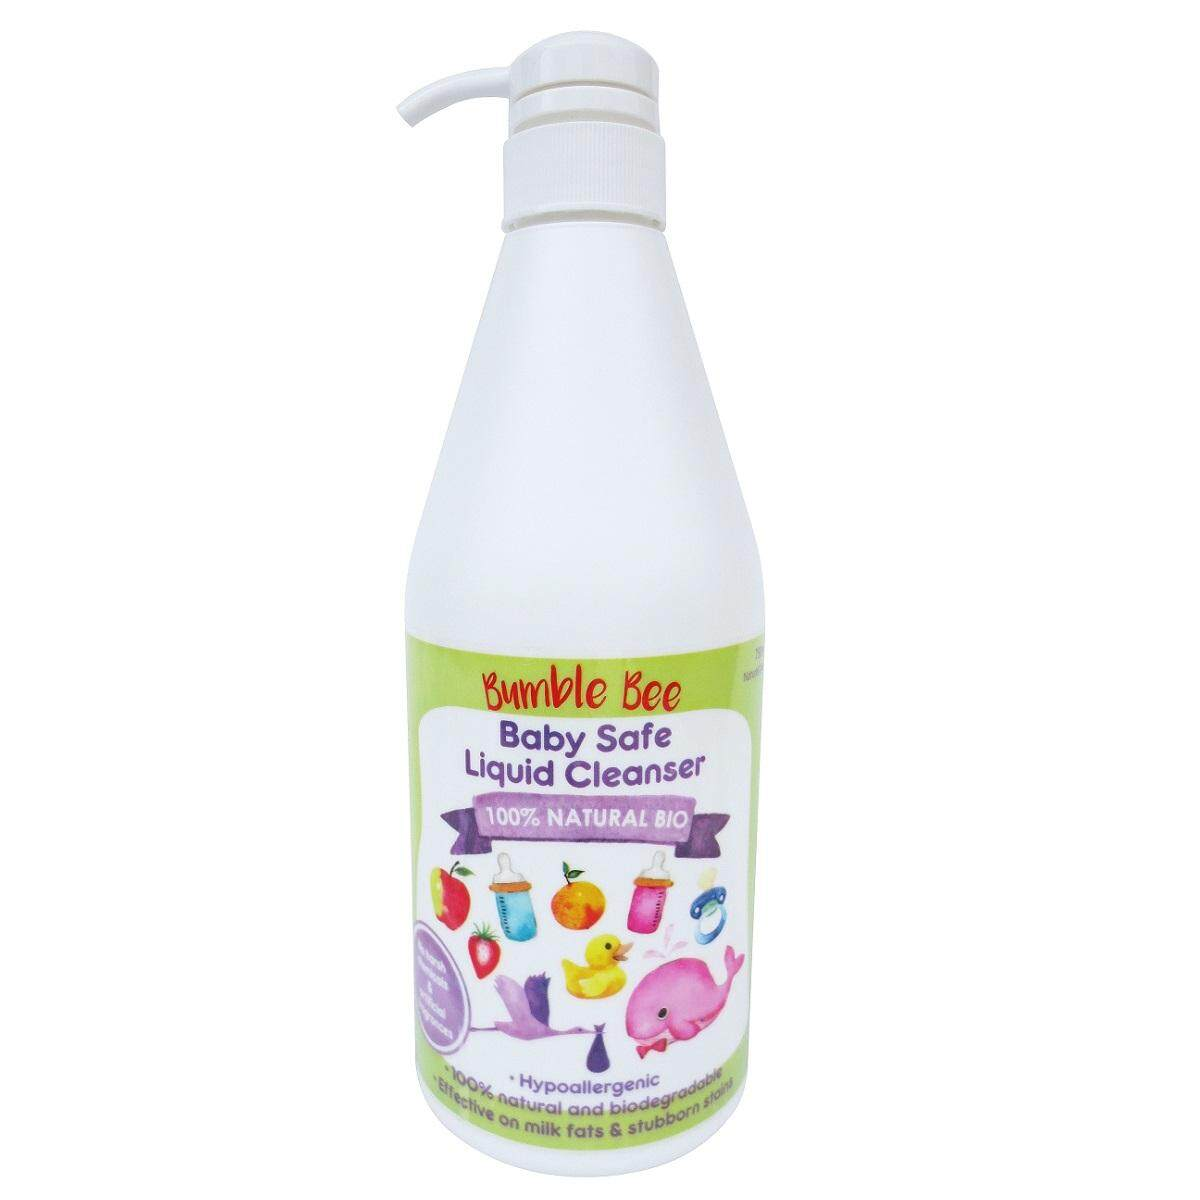 Bumble Bee Baby Safe Liquid Cleanser (Bottle 750ml)